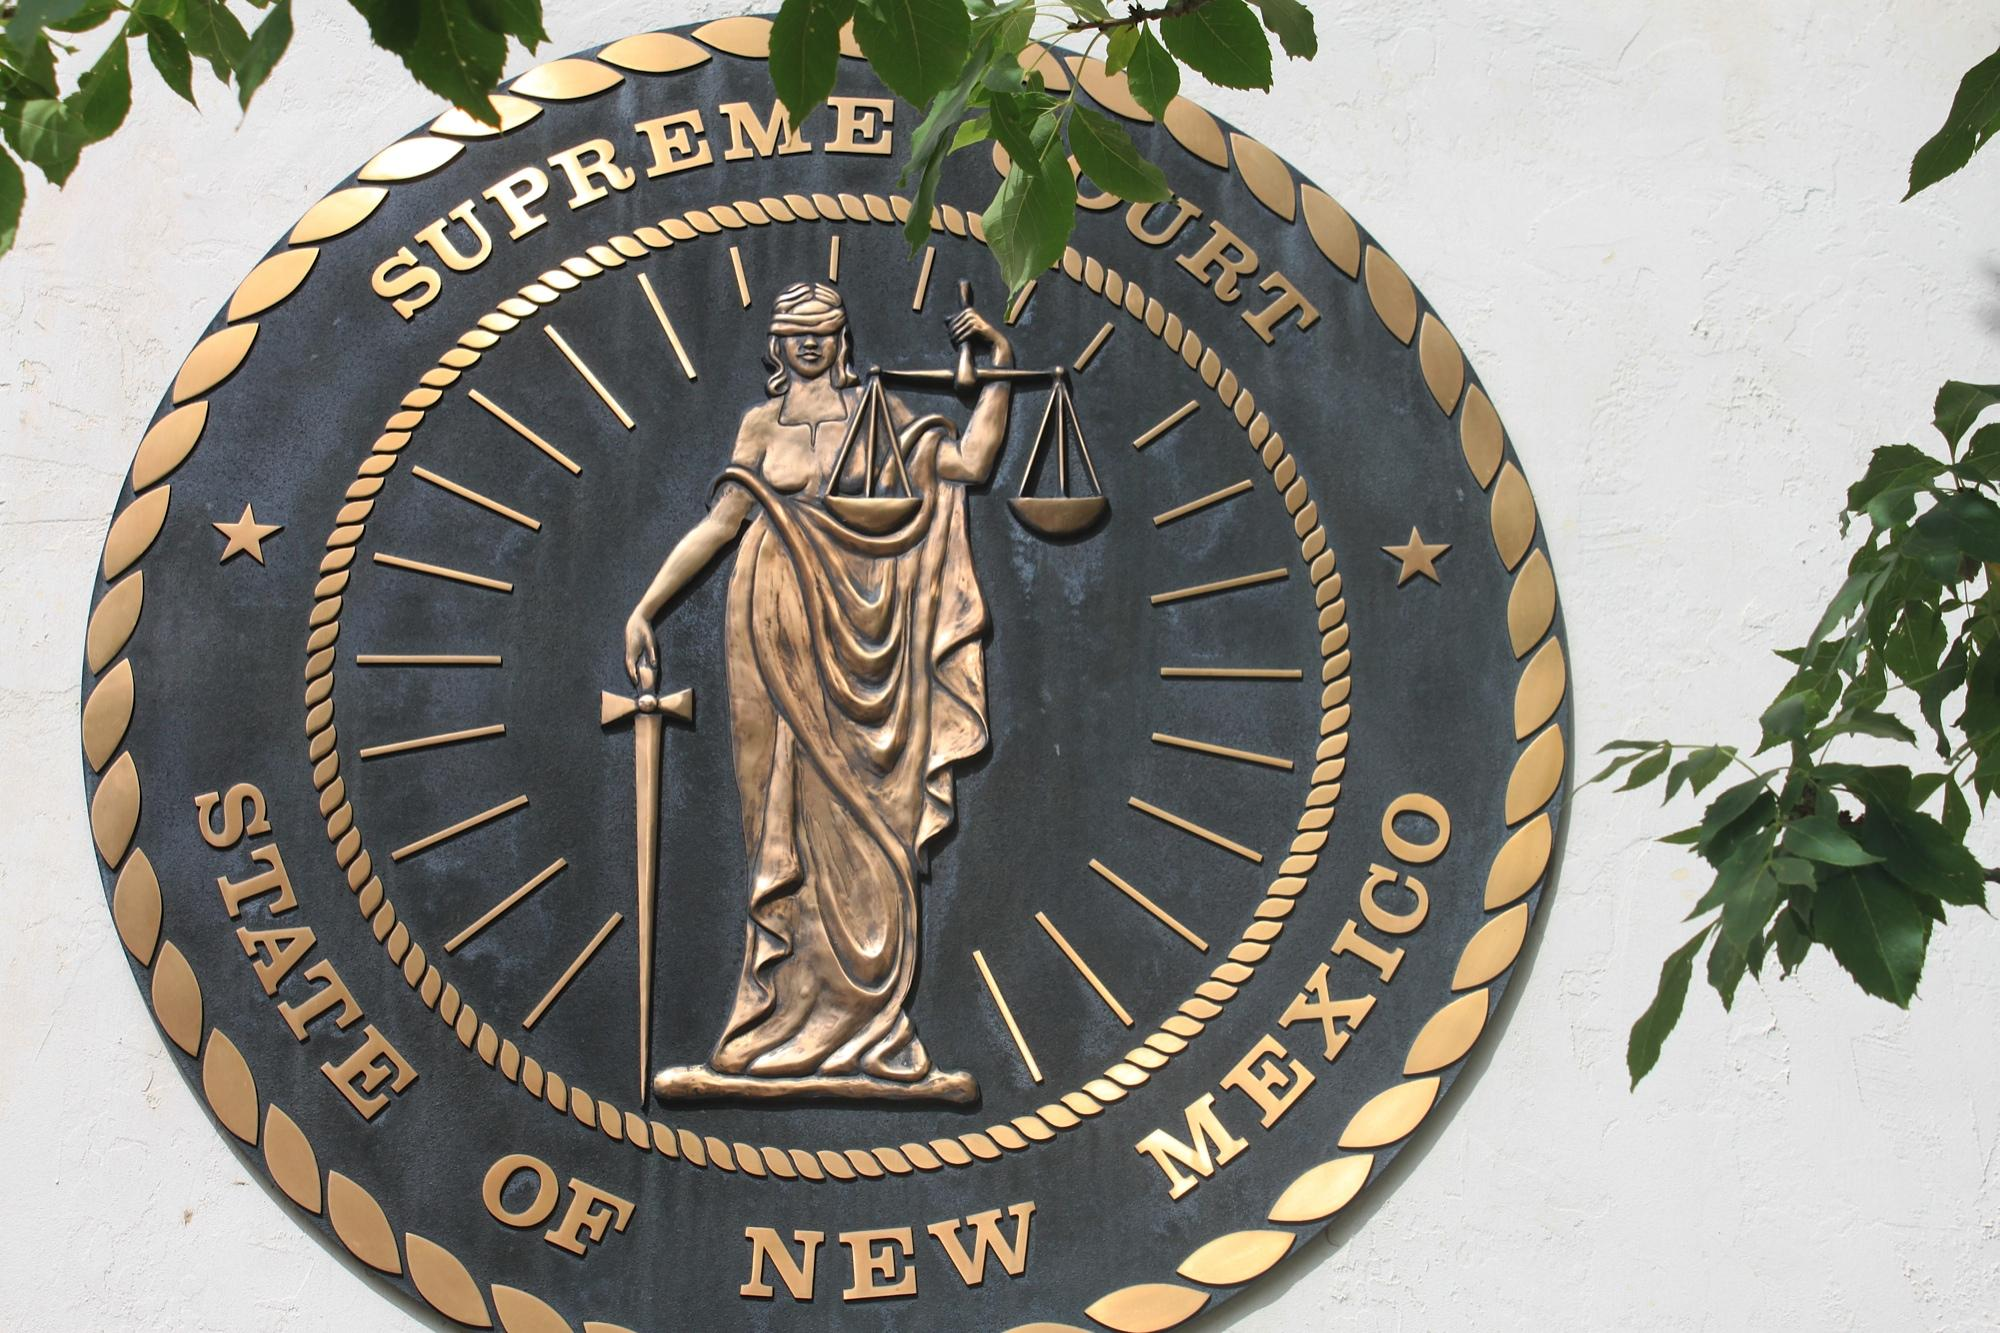 The seal of the New Mexico Supreme Court.